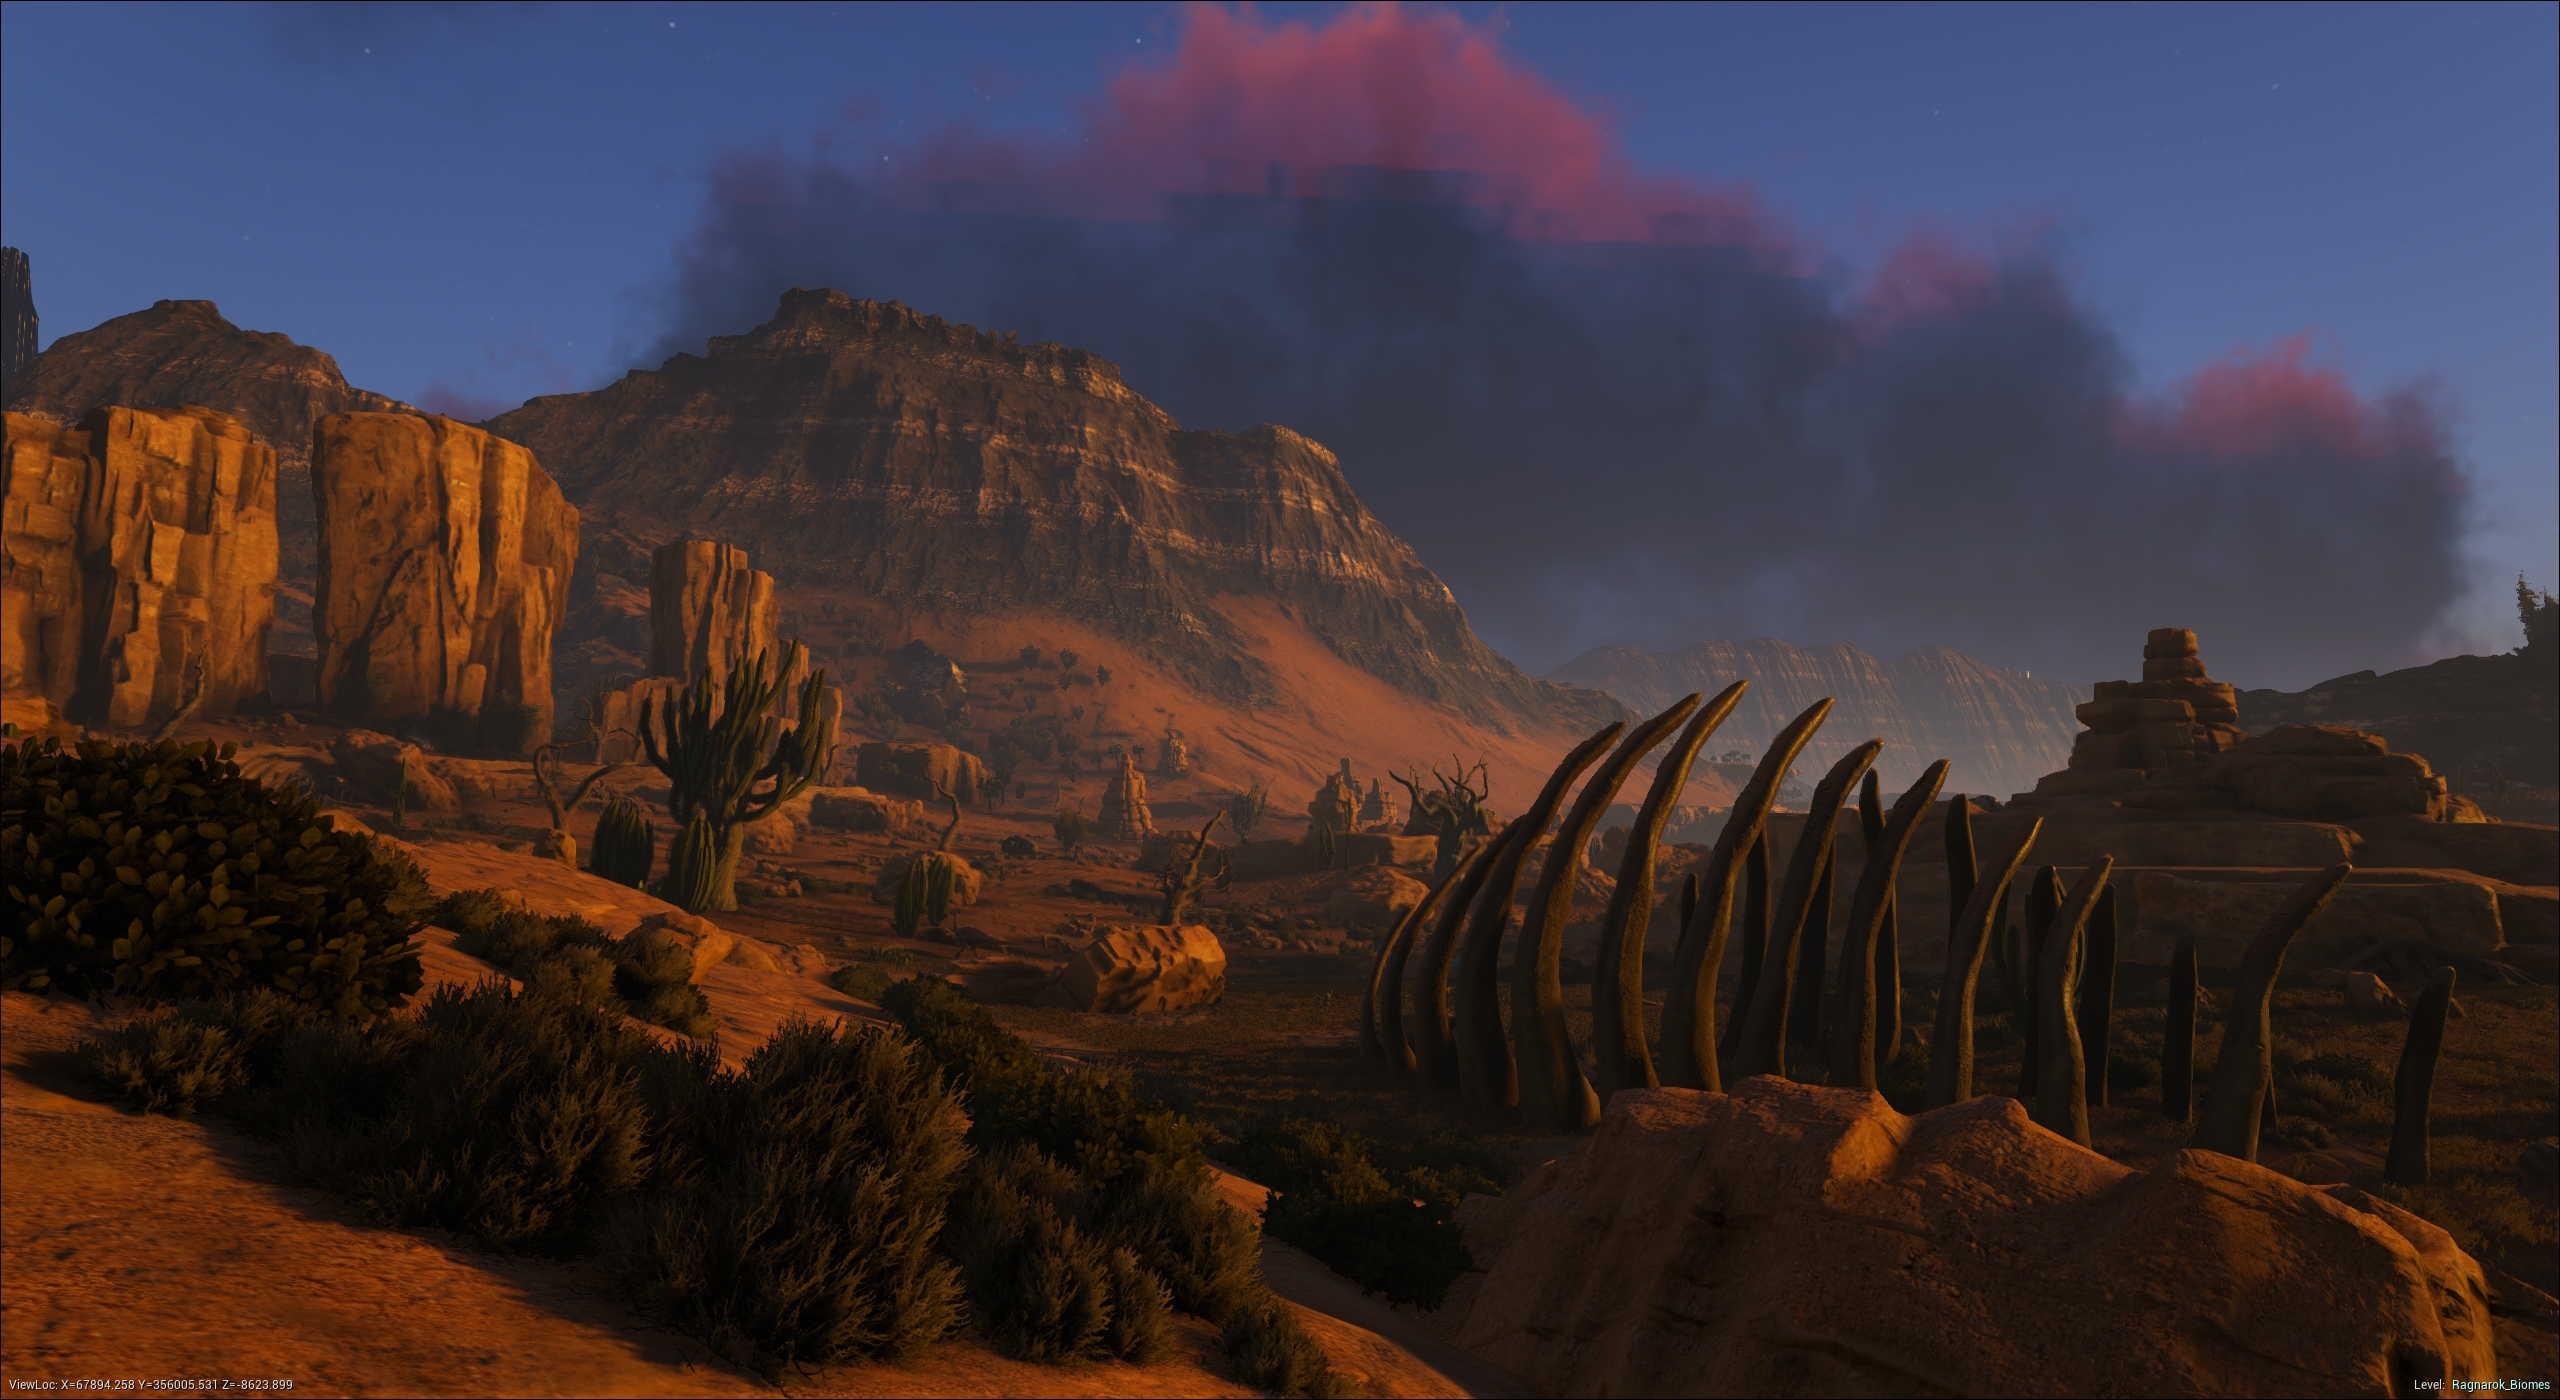 ARK Survival Evolved PC Update V272 Released With New